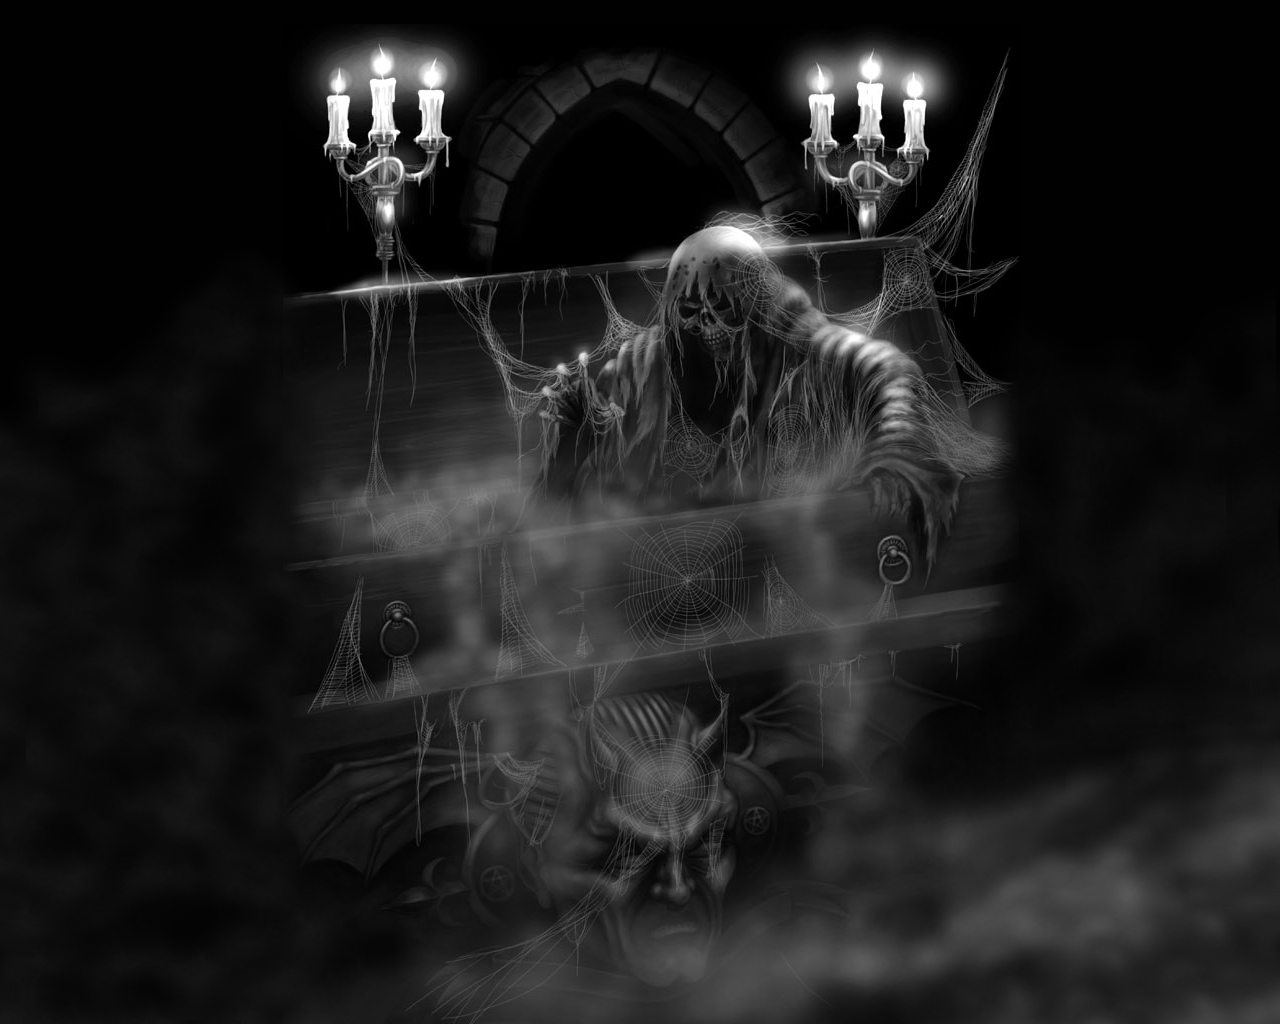 Scary wallpaper backgrounds - Scary skull backgrounds ...